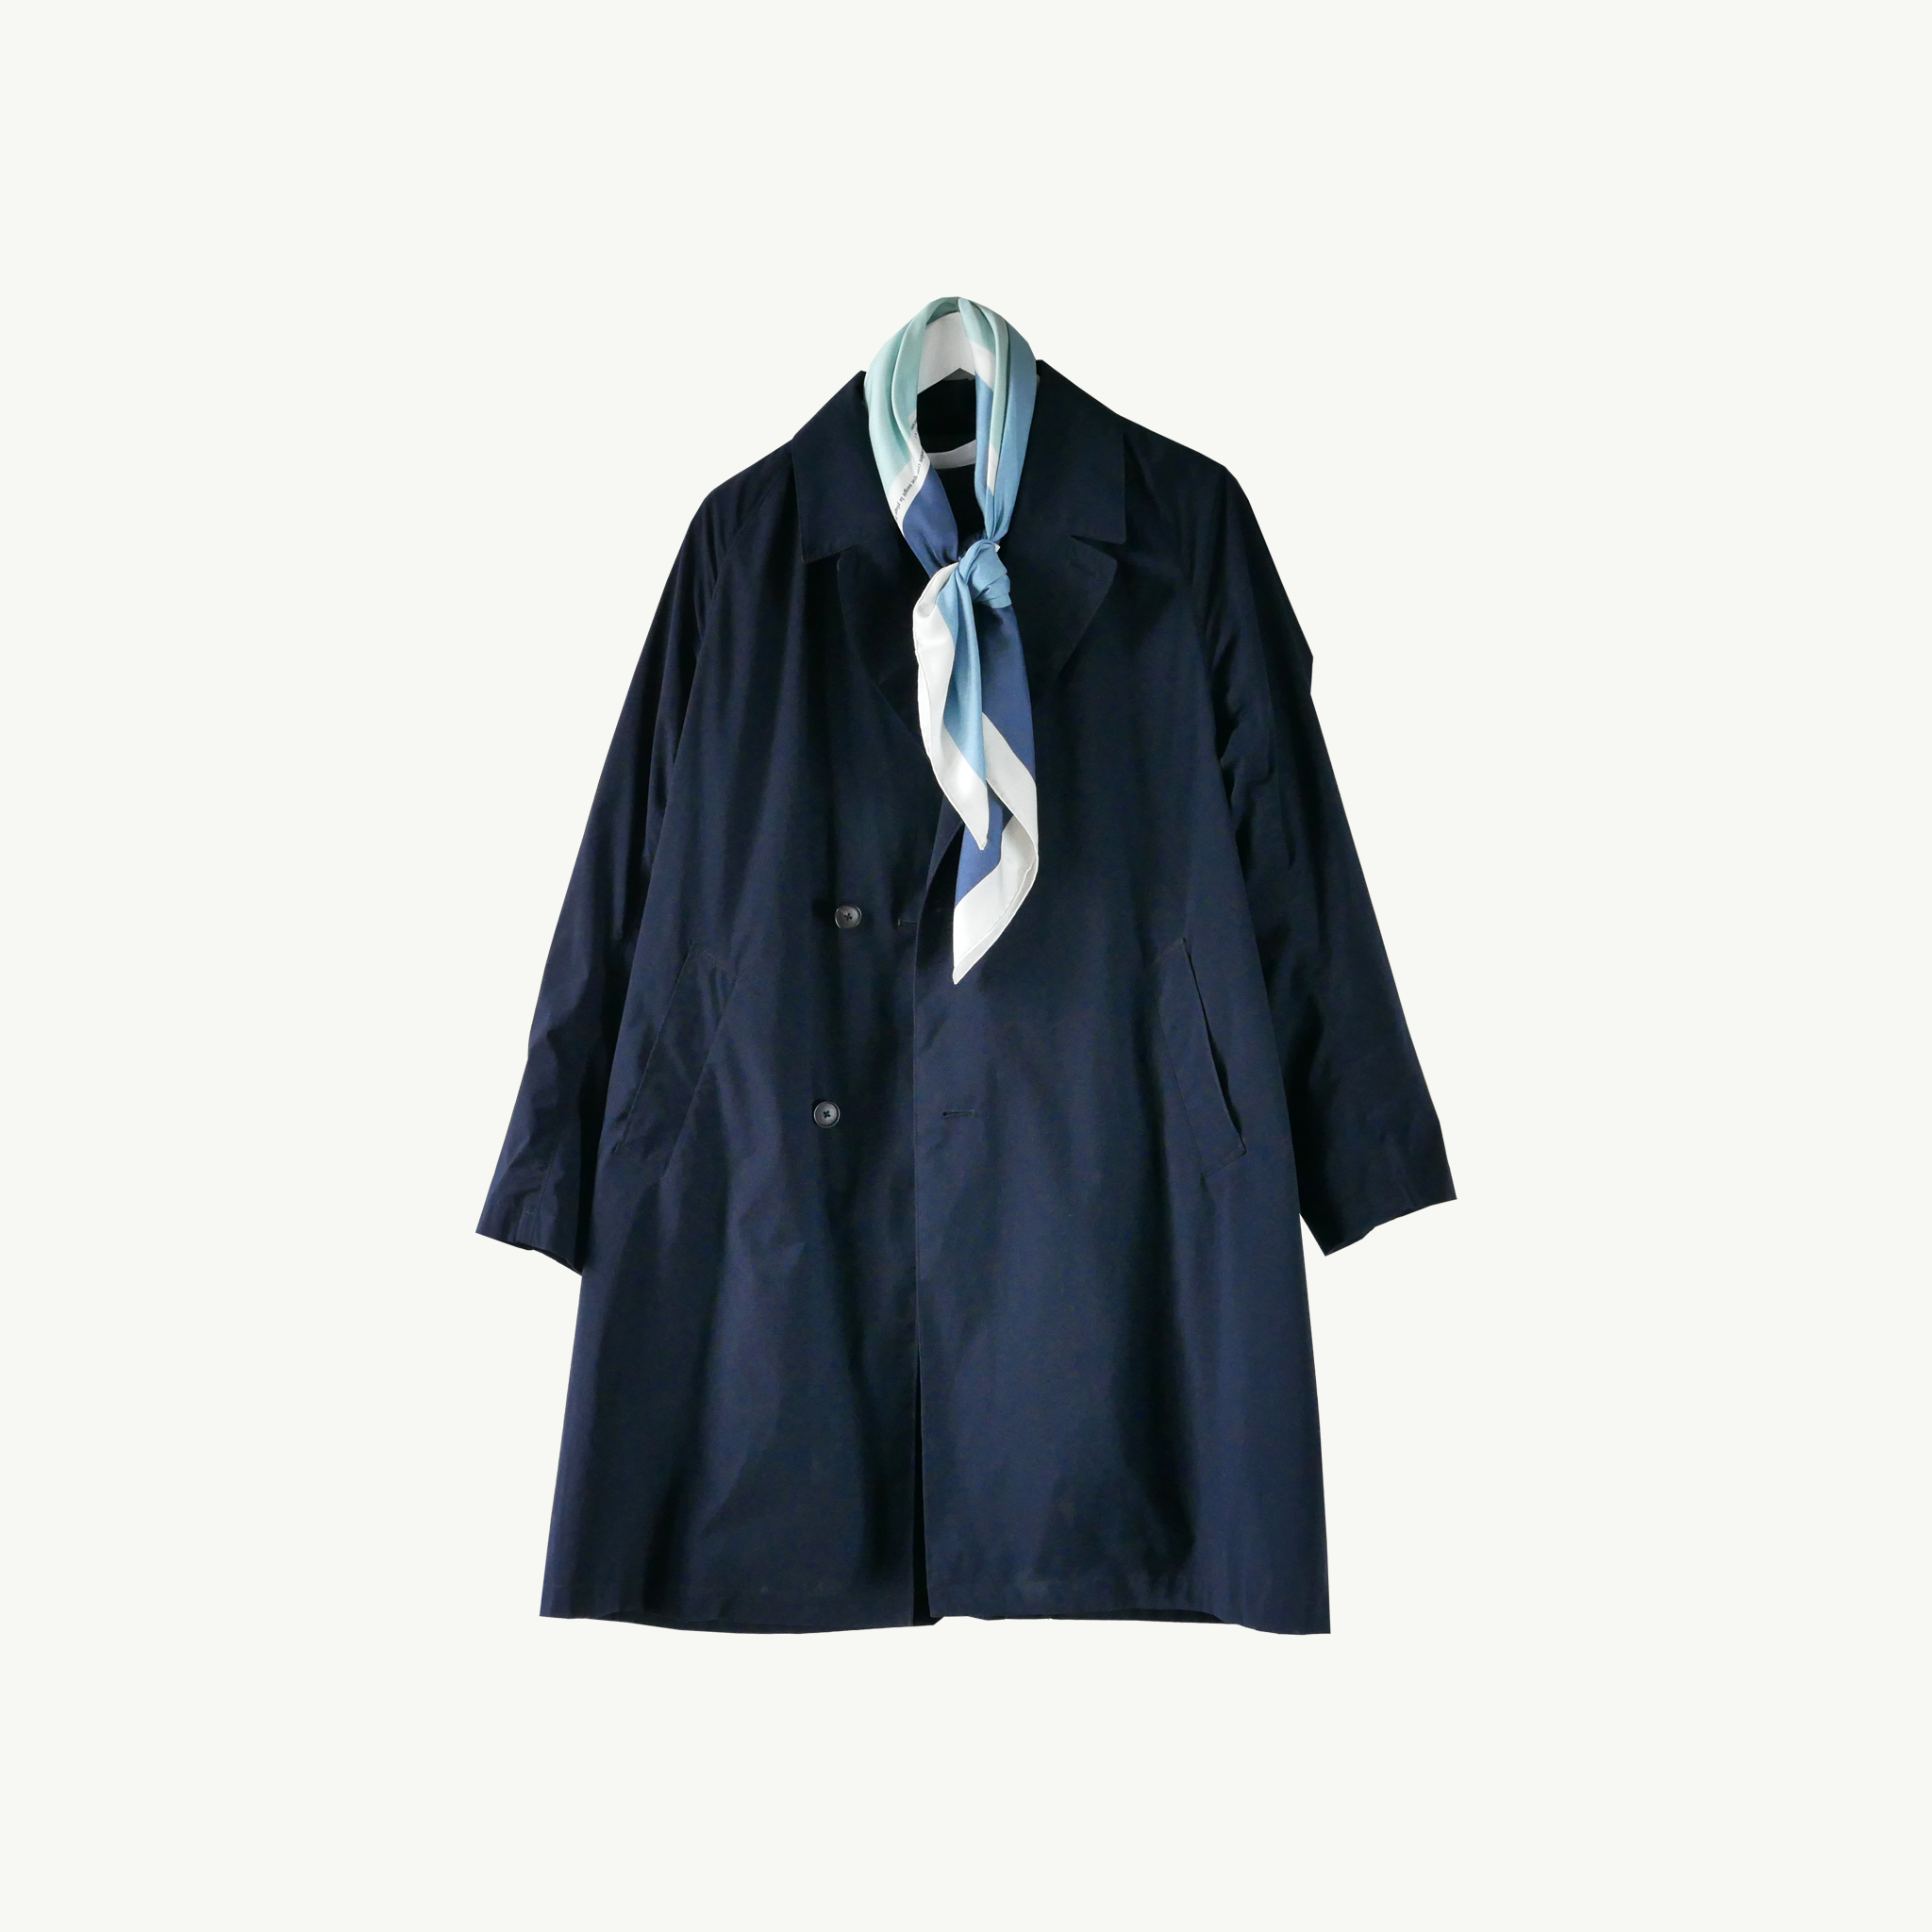 Les Belles Heures Arcipelago, 12h13 100% hand rolled cashmere, modal and silk scarf in our 90cm format worn on a navy oversized raincoat